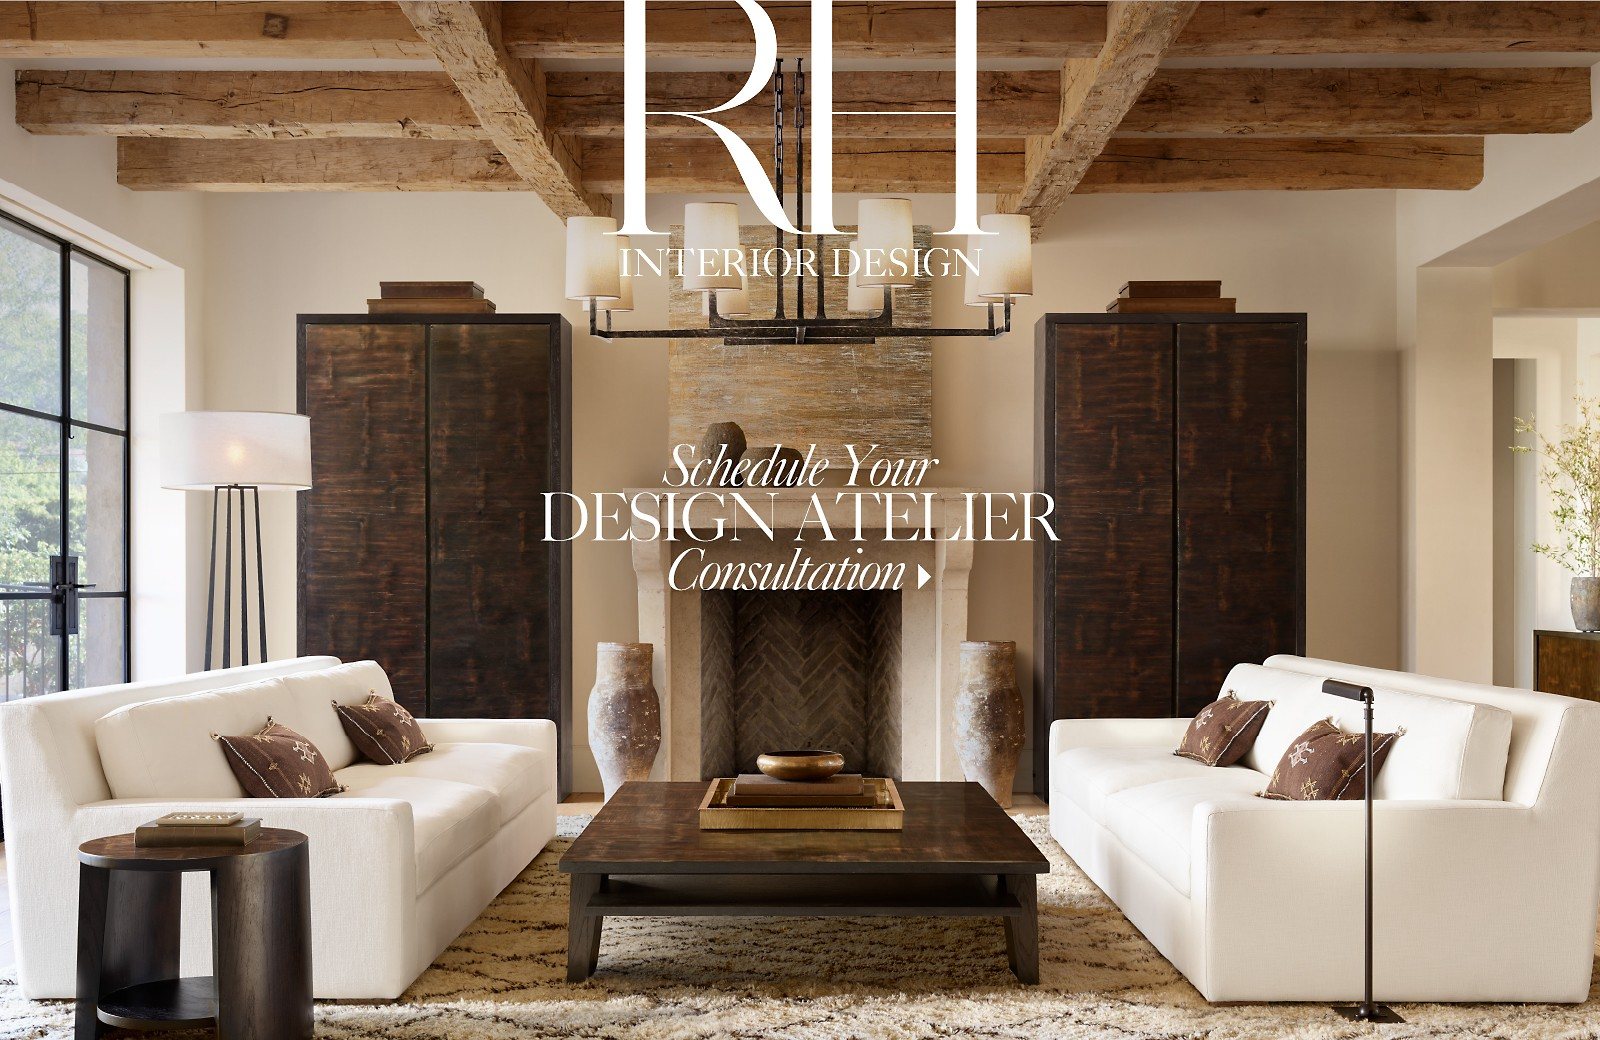 Schedule your RH Interior Design Consultation. RH Homepage